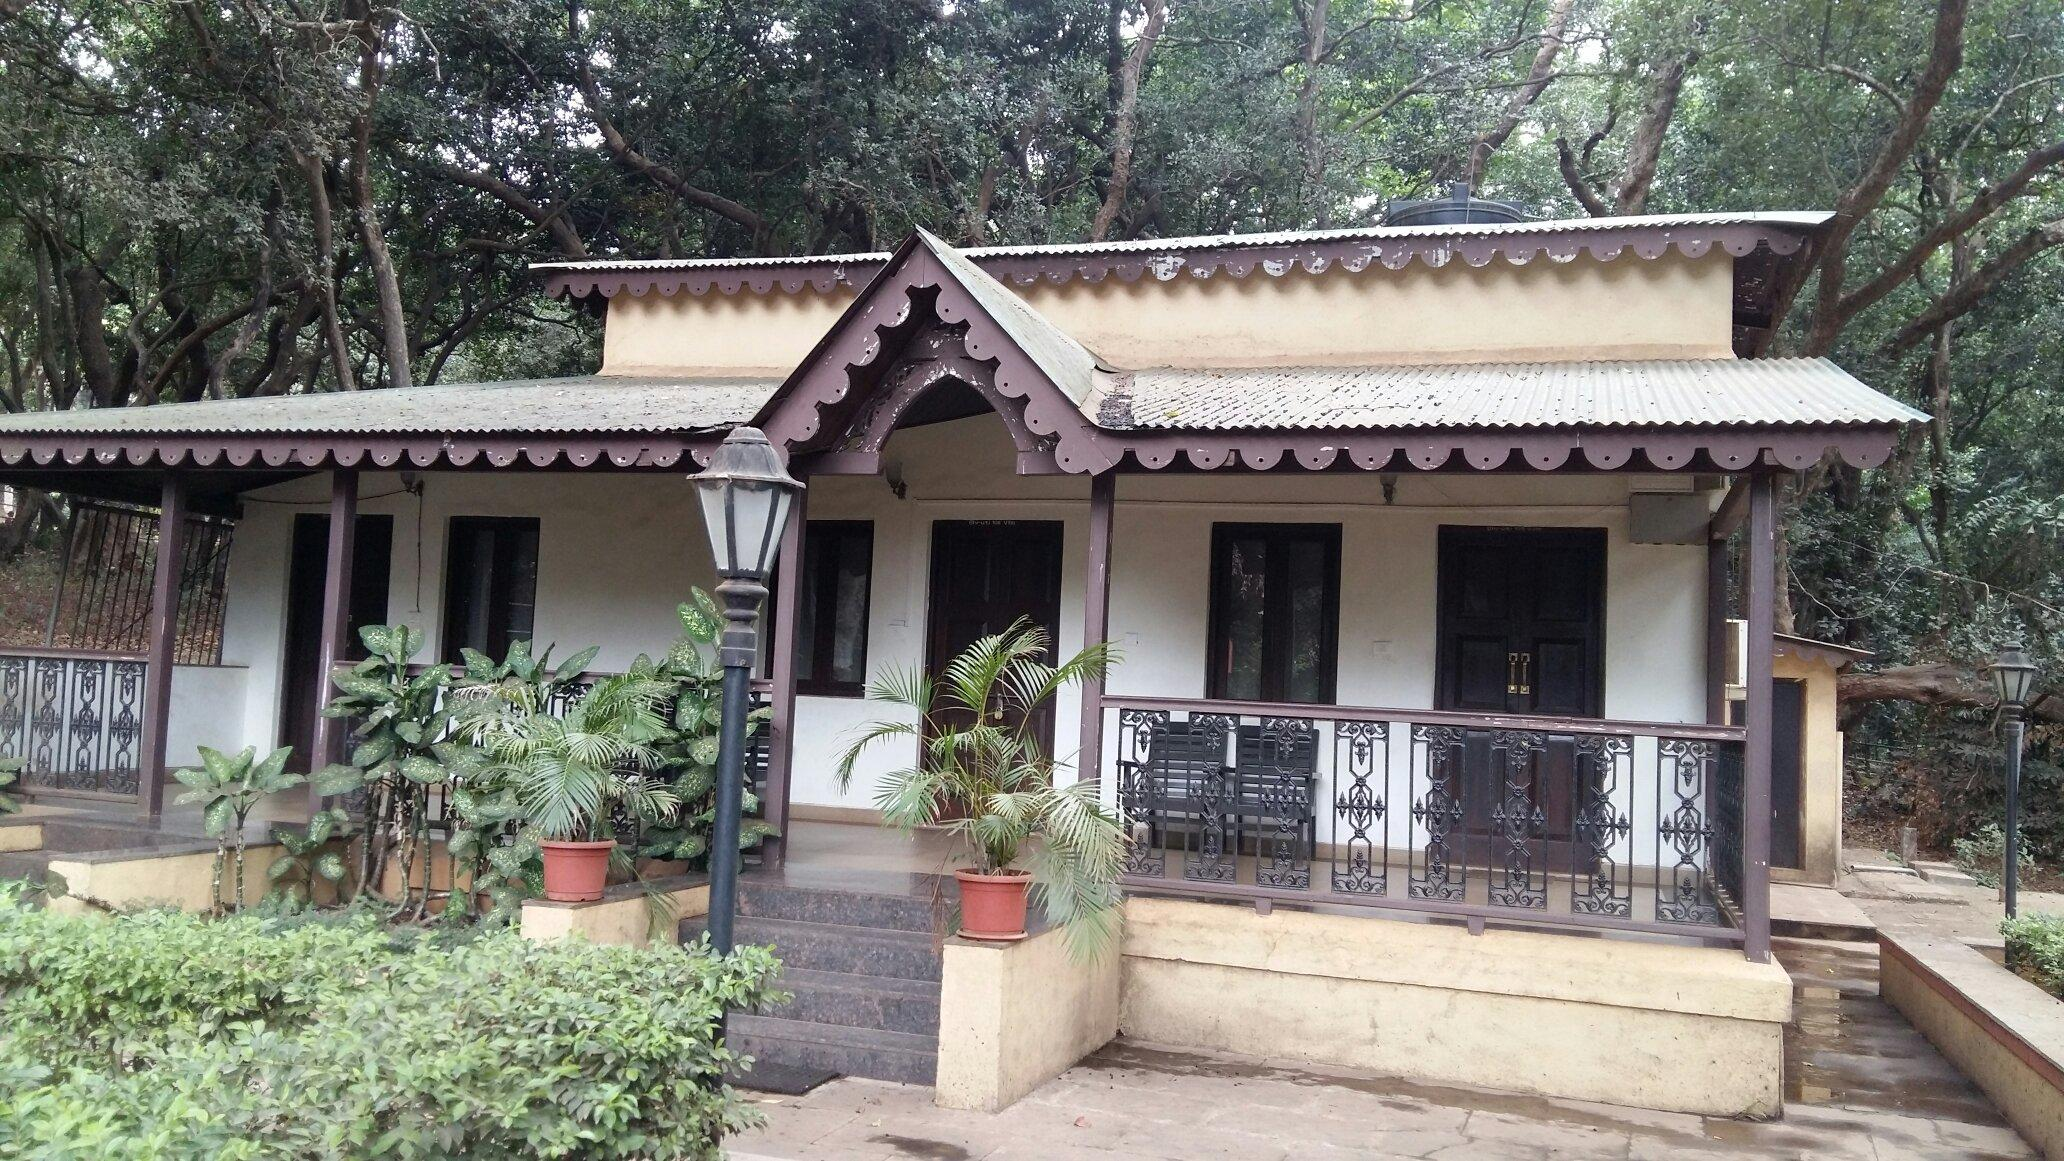 MTDC Holiday Resort - Matheran Image